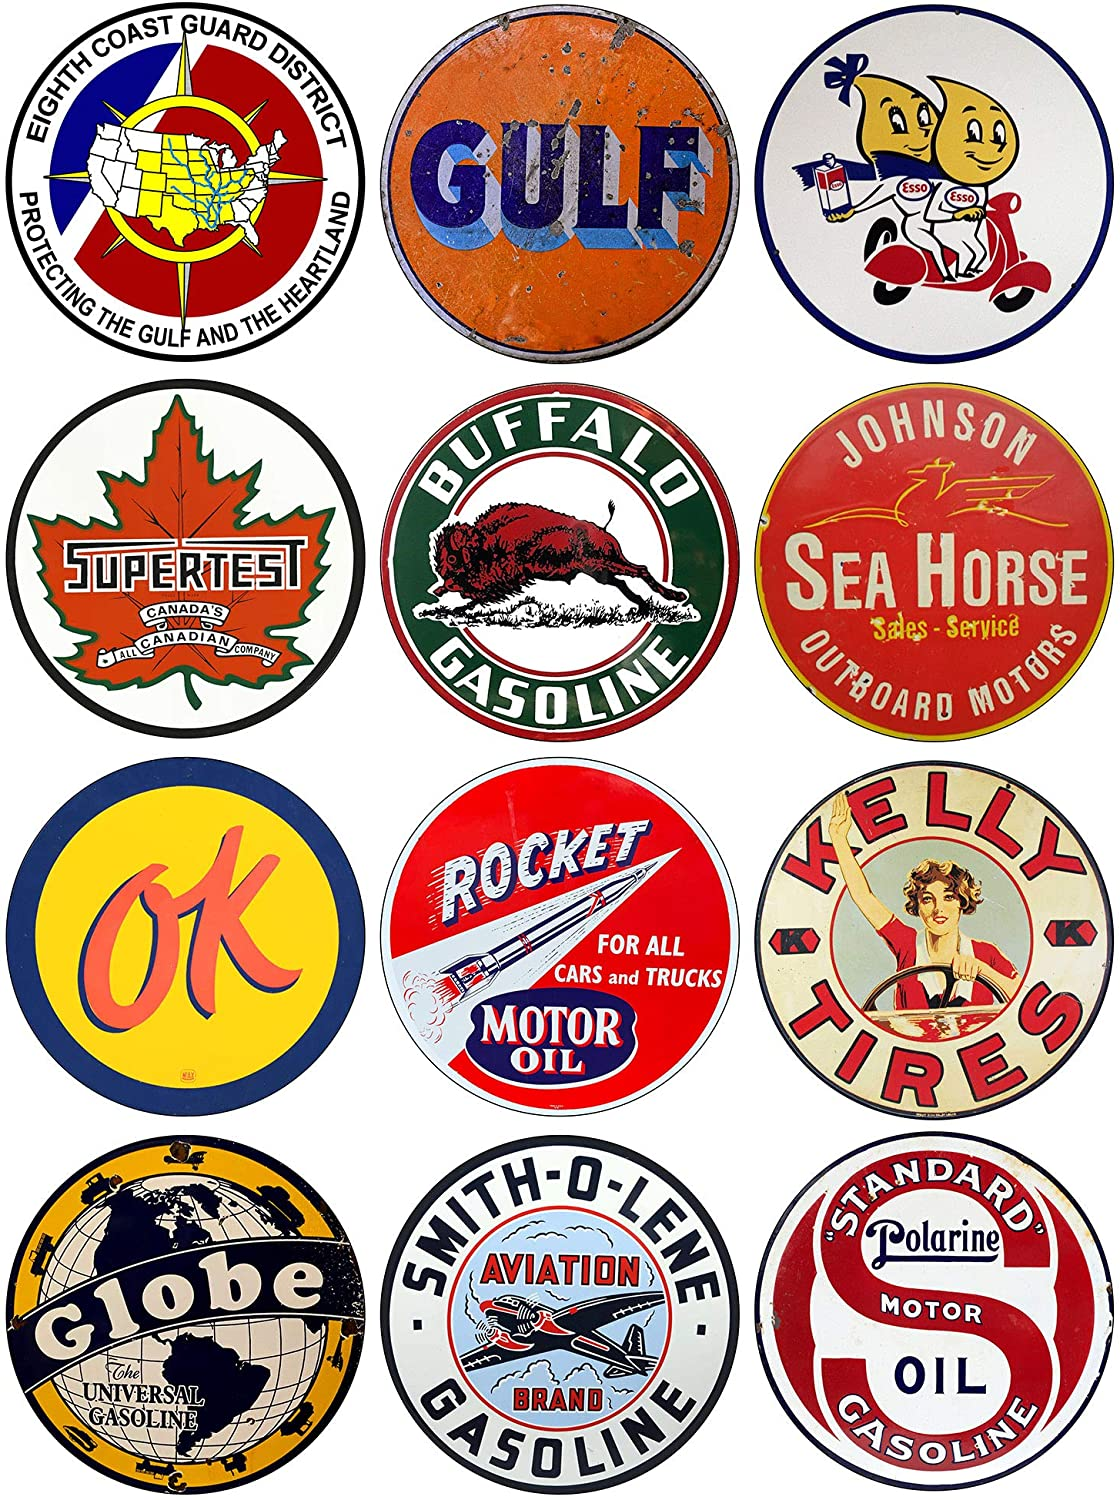 Brotherhood Vintage Gas Sign Reproduction Vintage Metal Signs Round Metal Tin Sign for Garage and Home Décor 12 Piece Assorted Package – Coast Guard 8th District